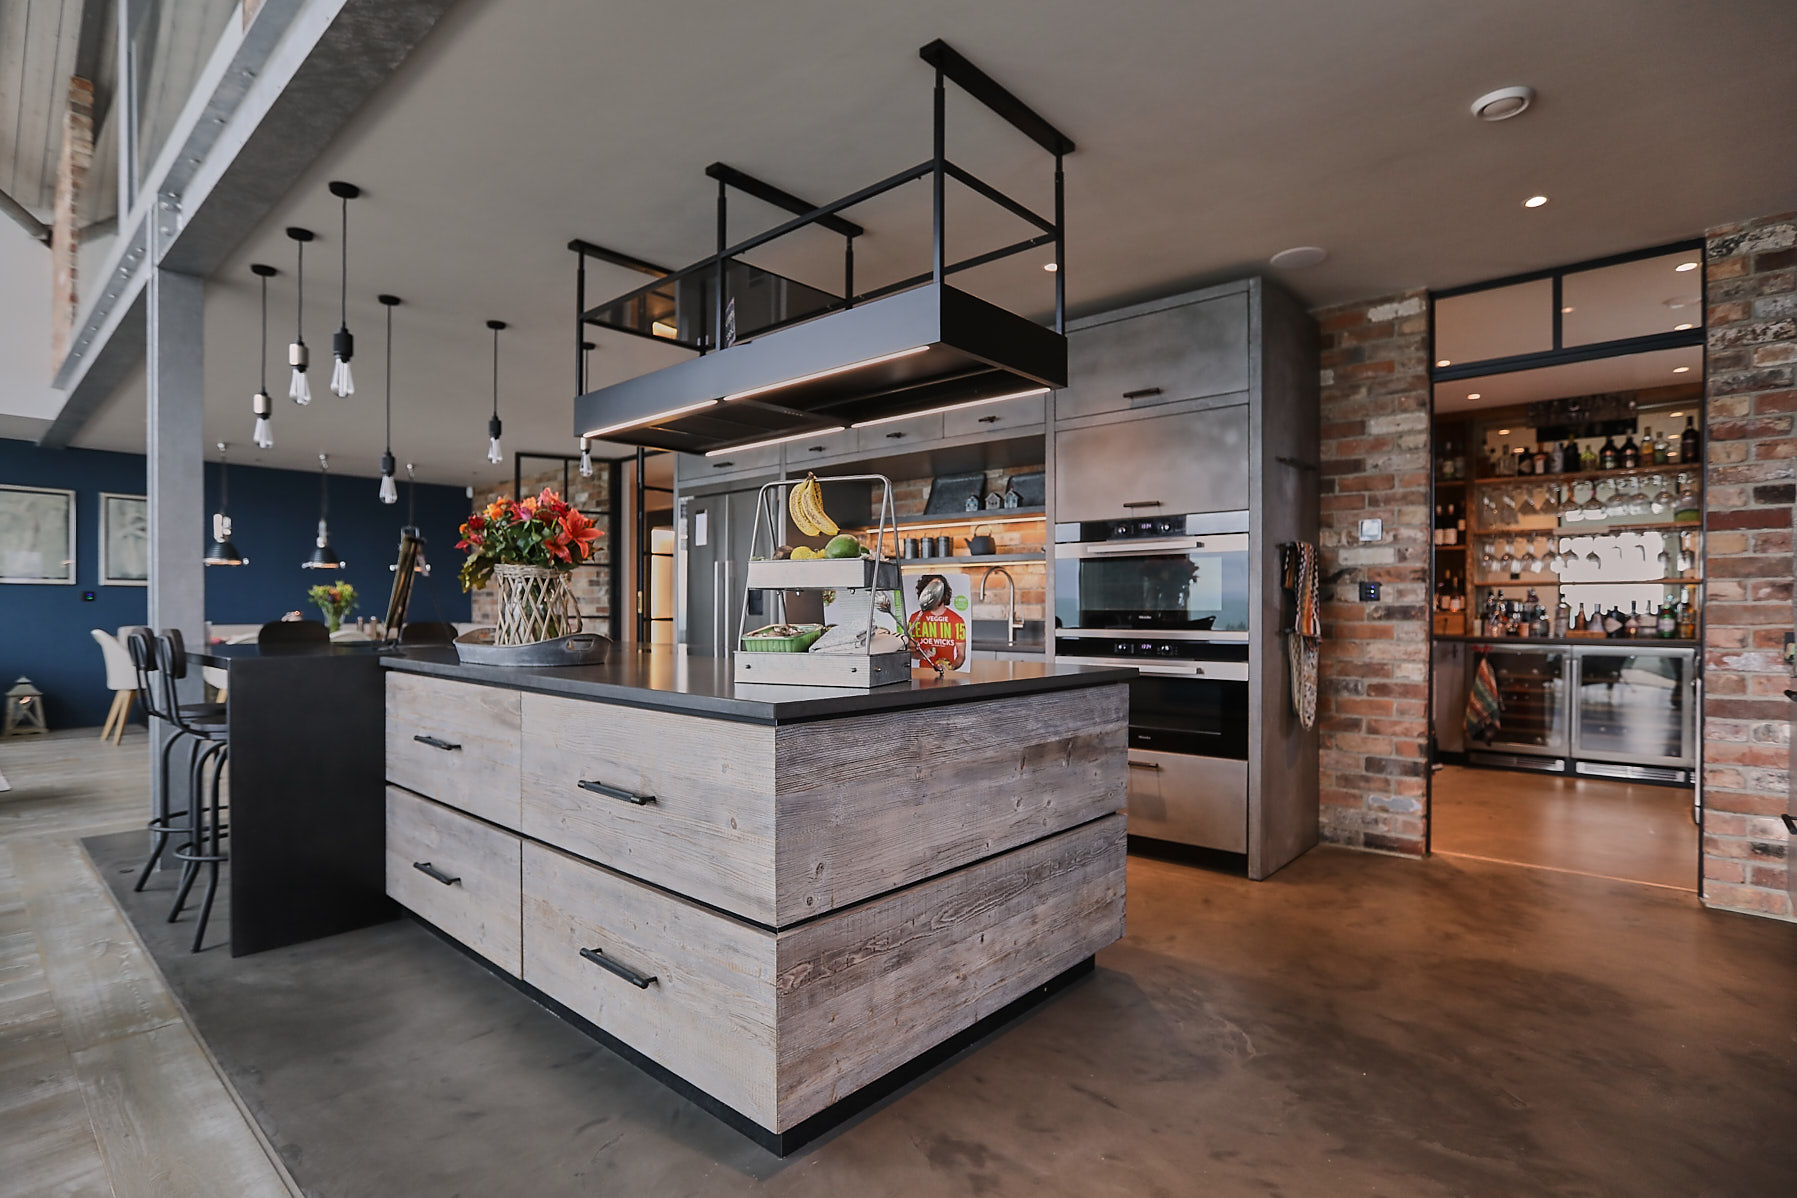 Mixing concrete, zinc and reclaimed wood in bespoke kitchen